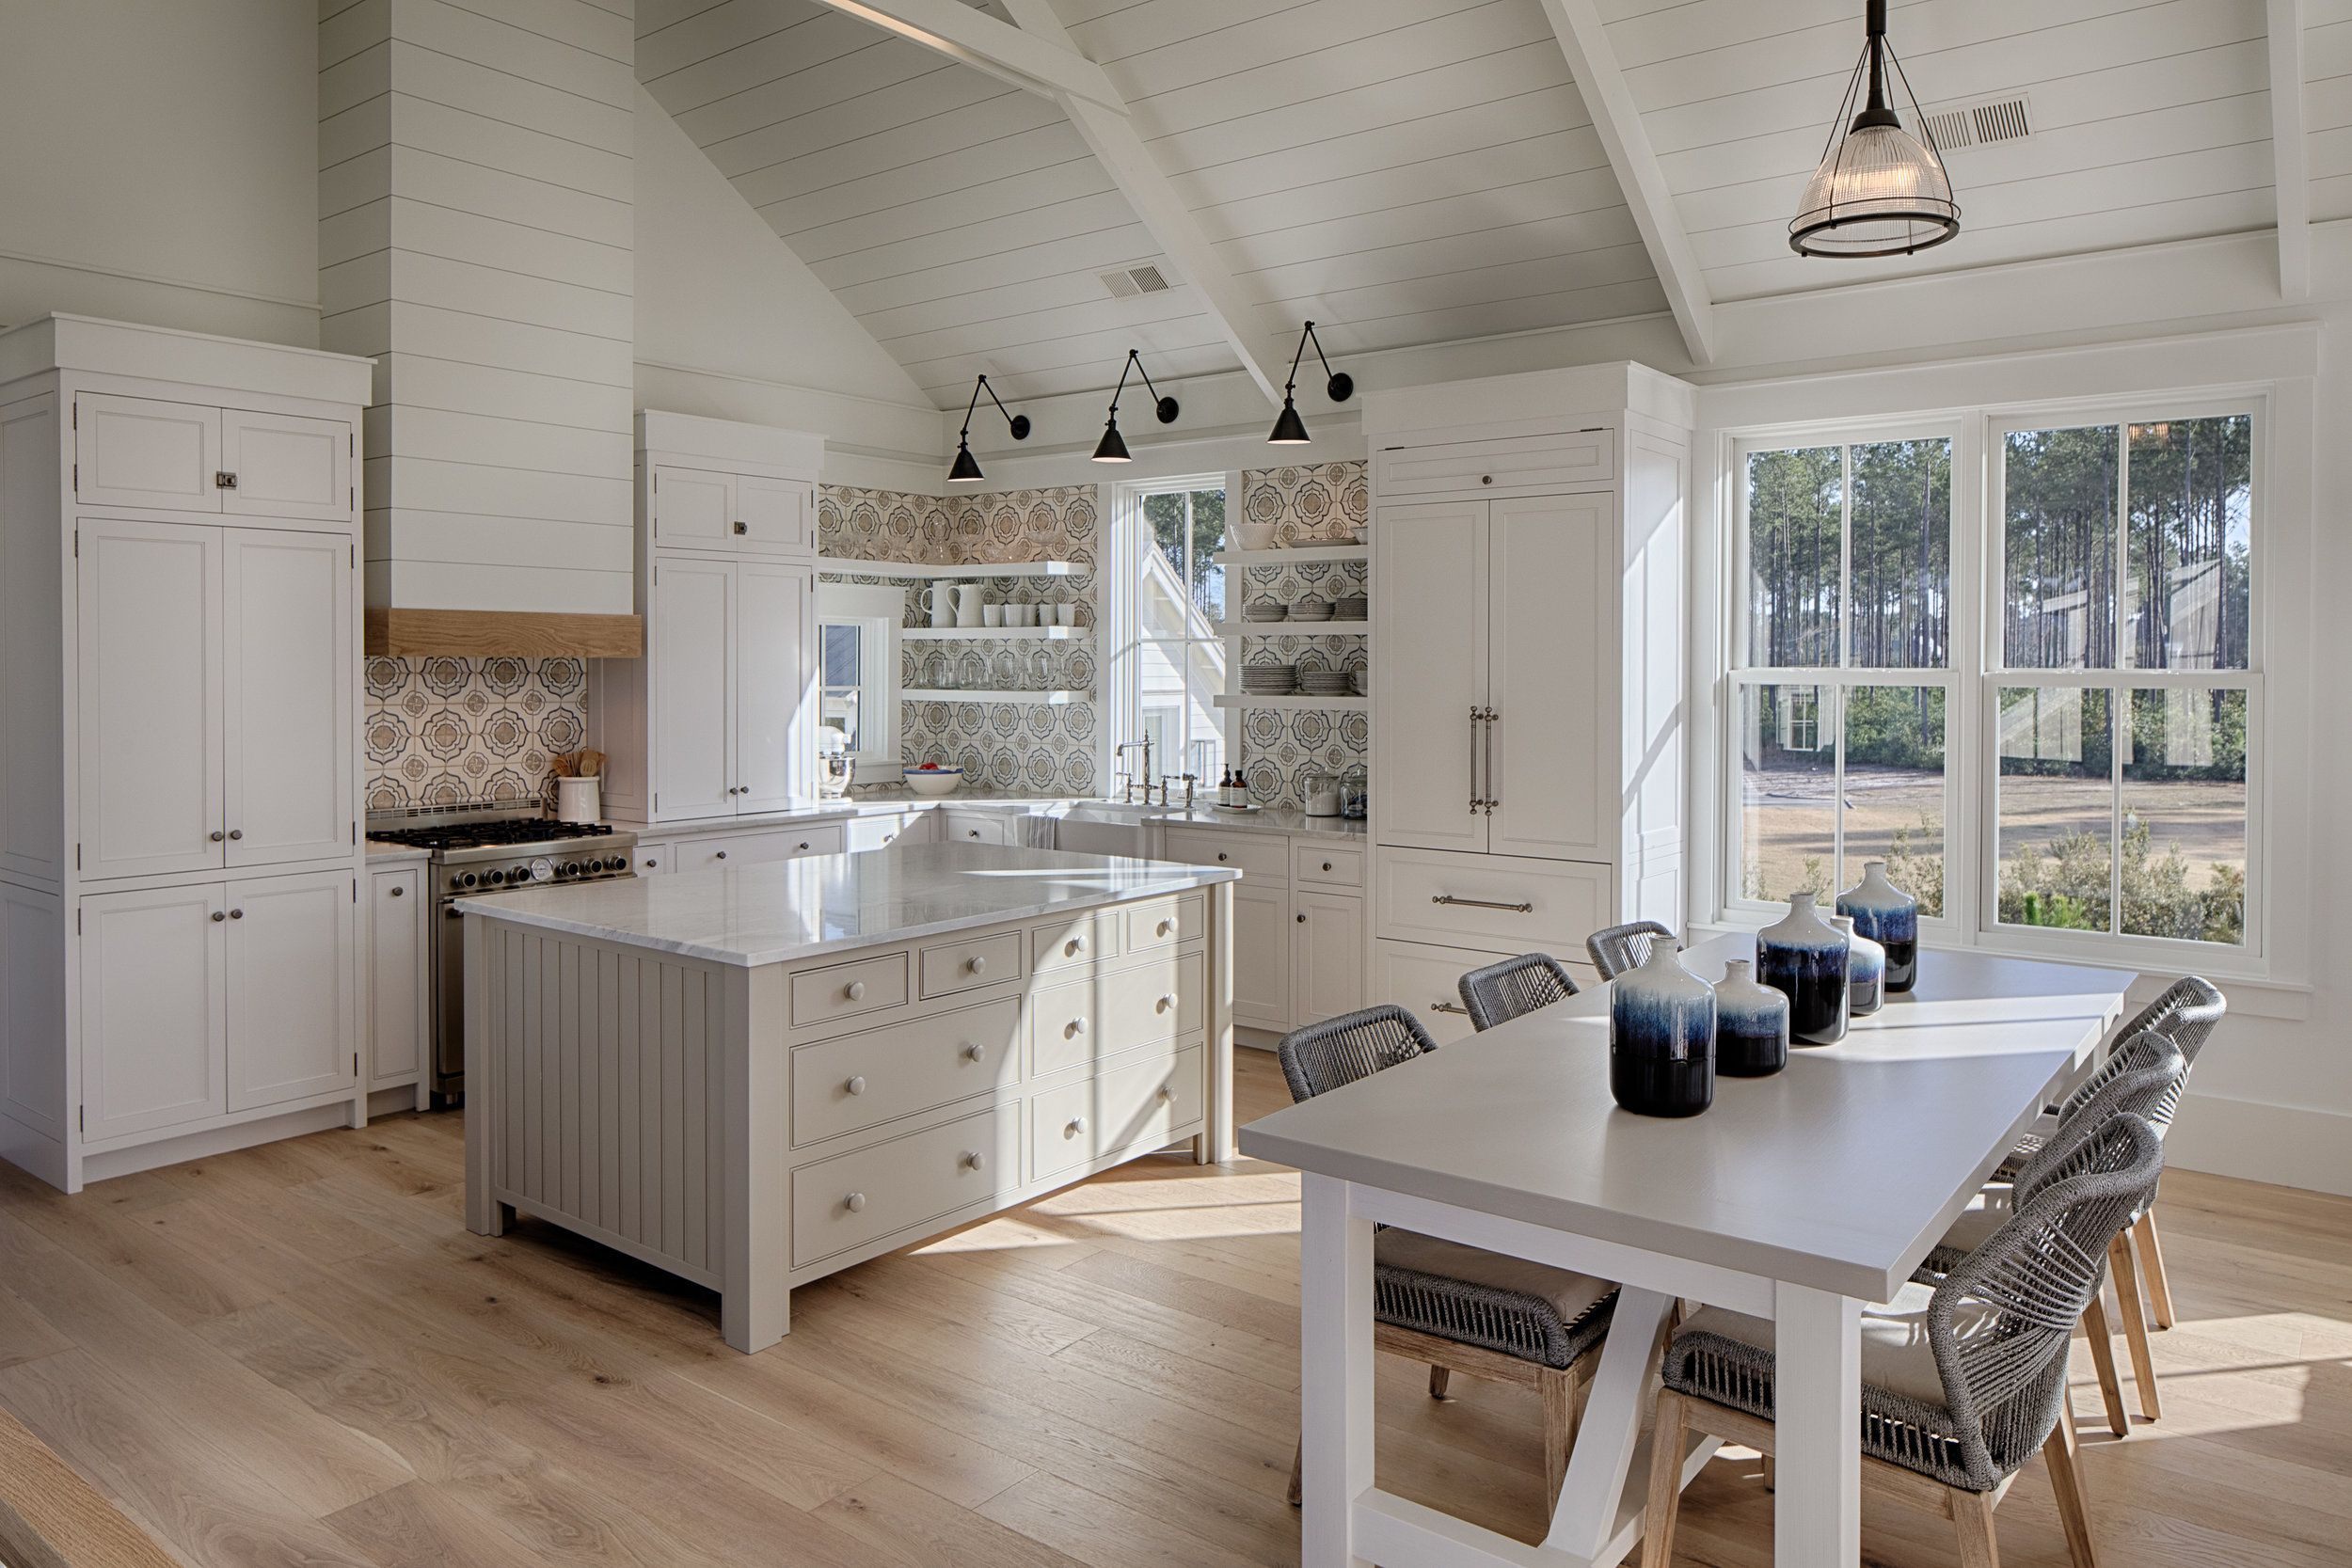 Coastal Cottage Interior Design Inspiration Part 1 {Get